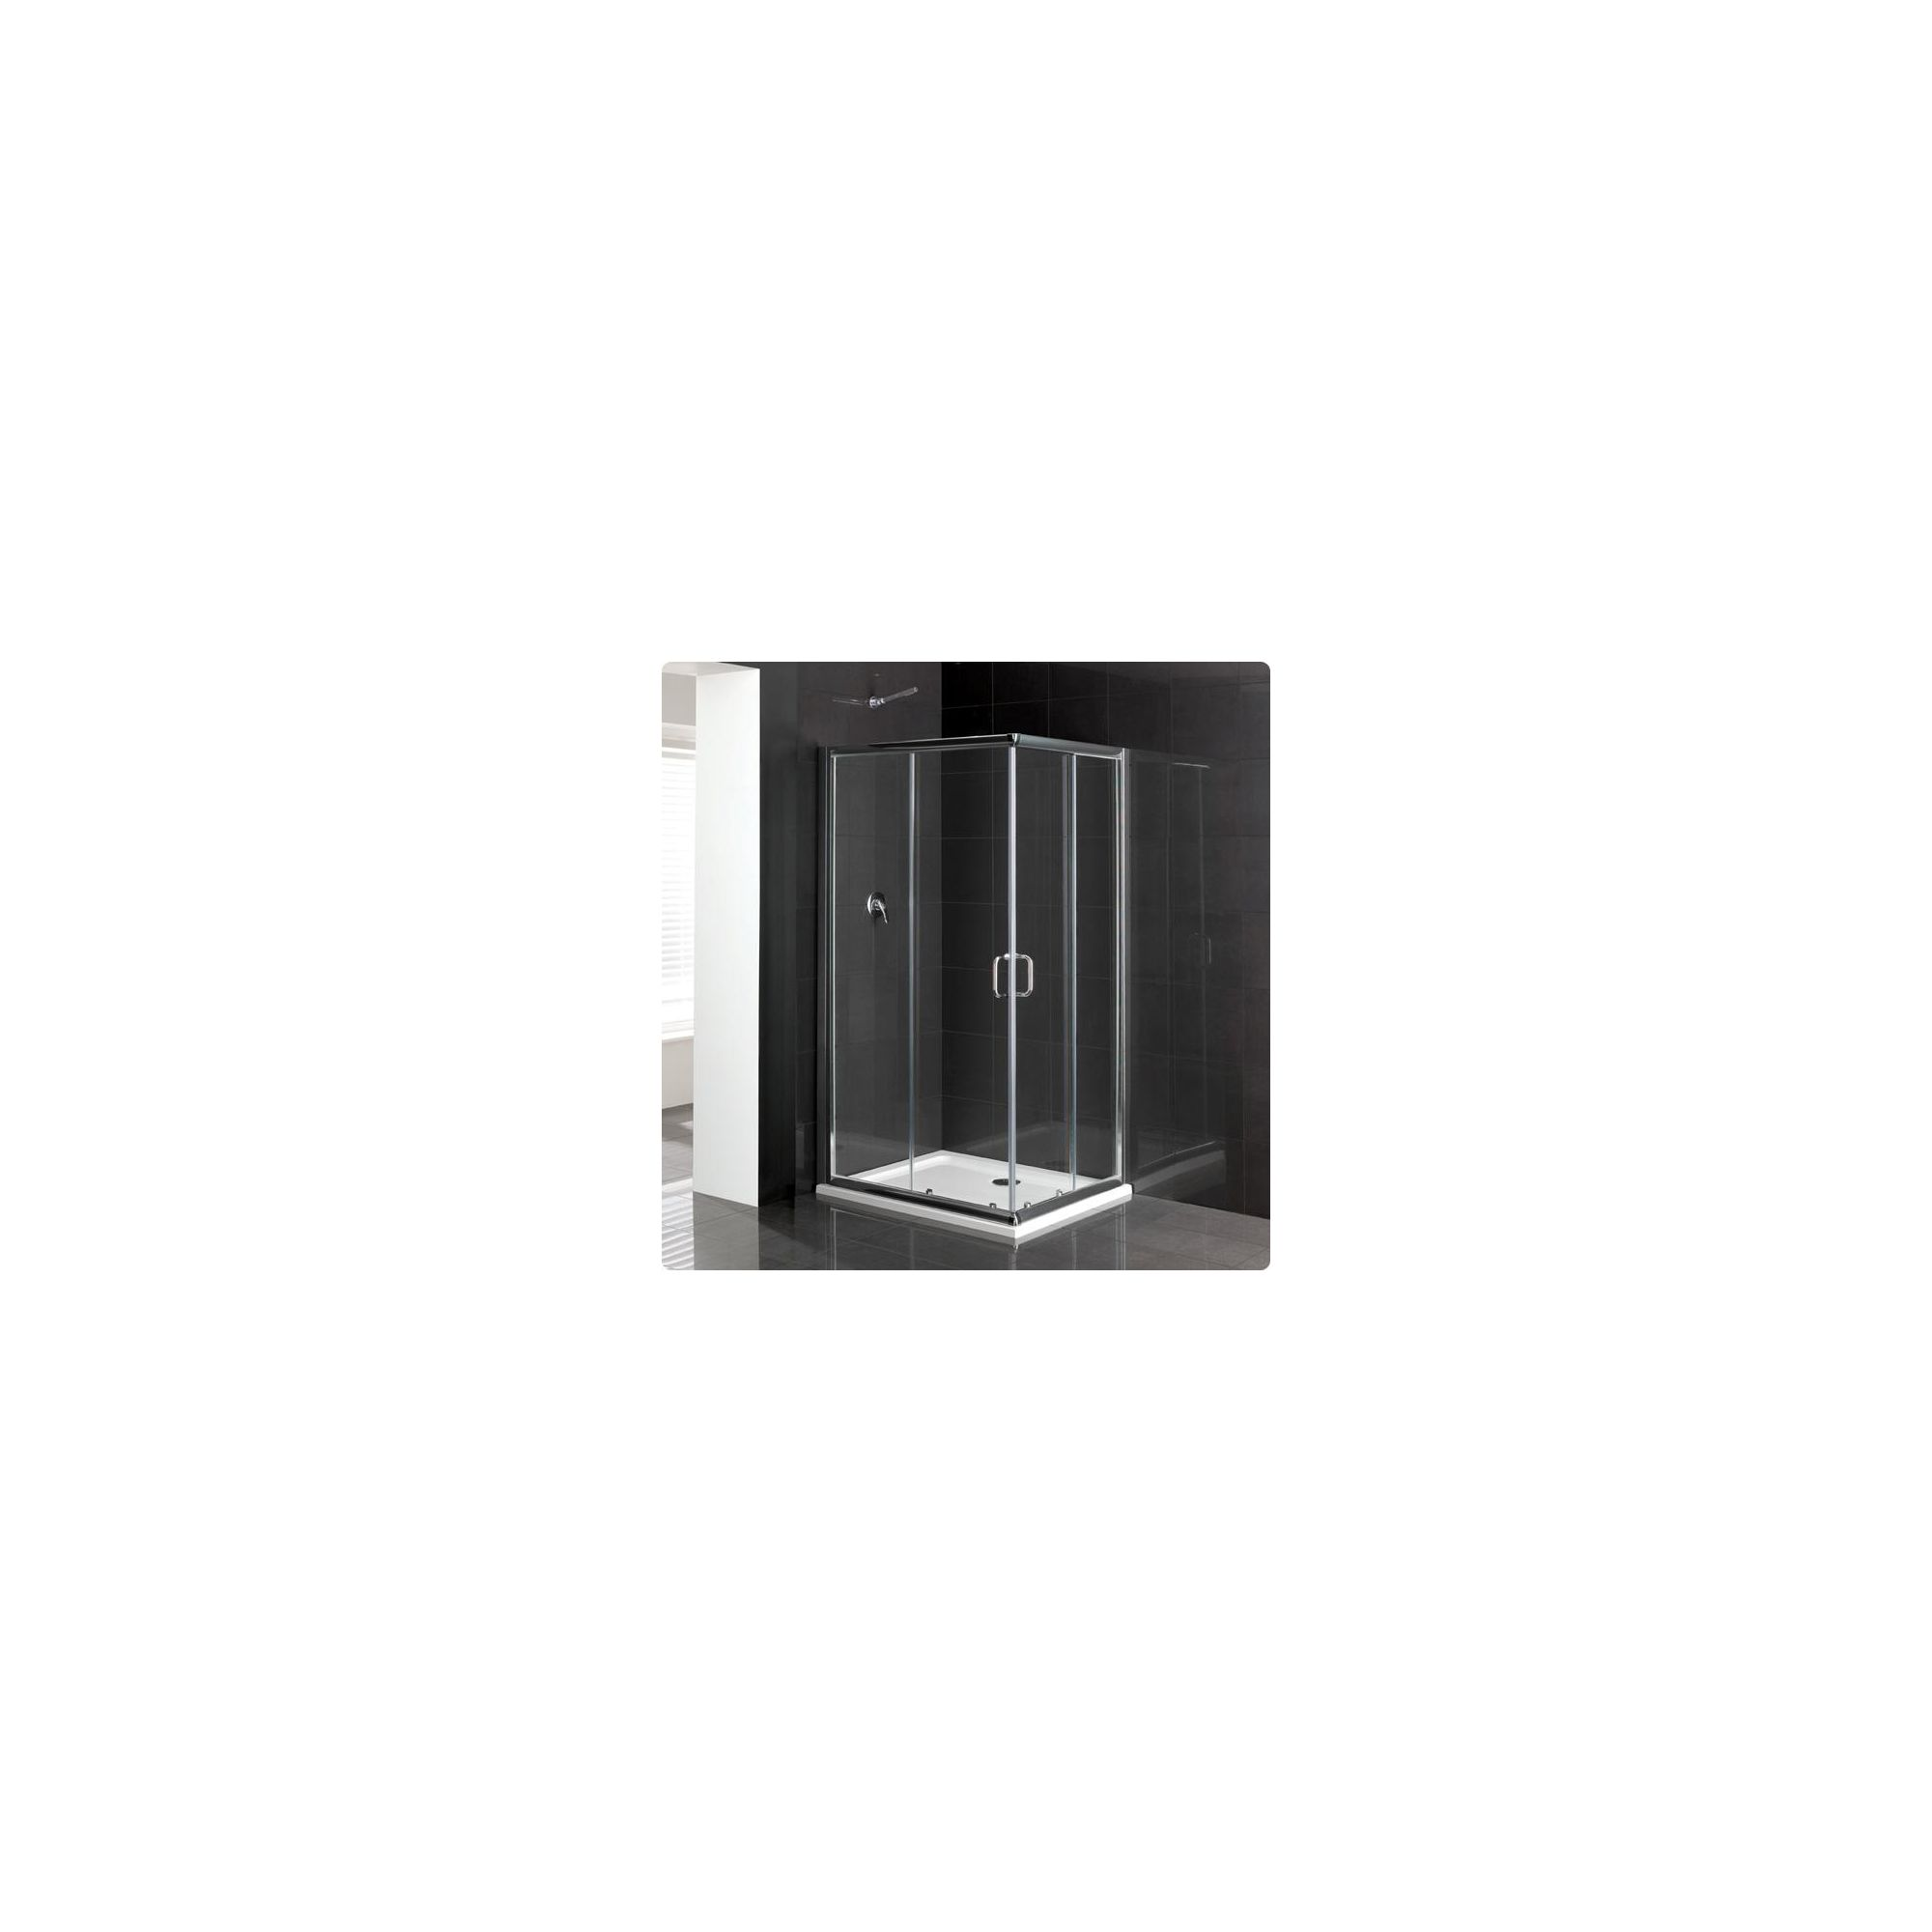 Duchy Elite Silver Corner Entry Shower Enclosure 900mm x 900mm, Standard Tray, 6mm Glass at Tescos Direct